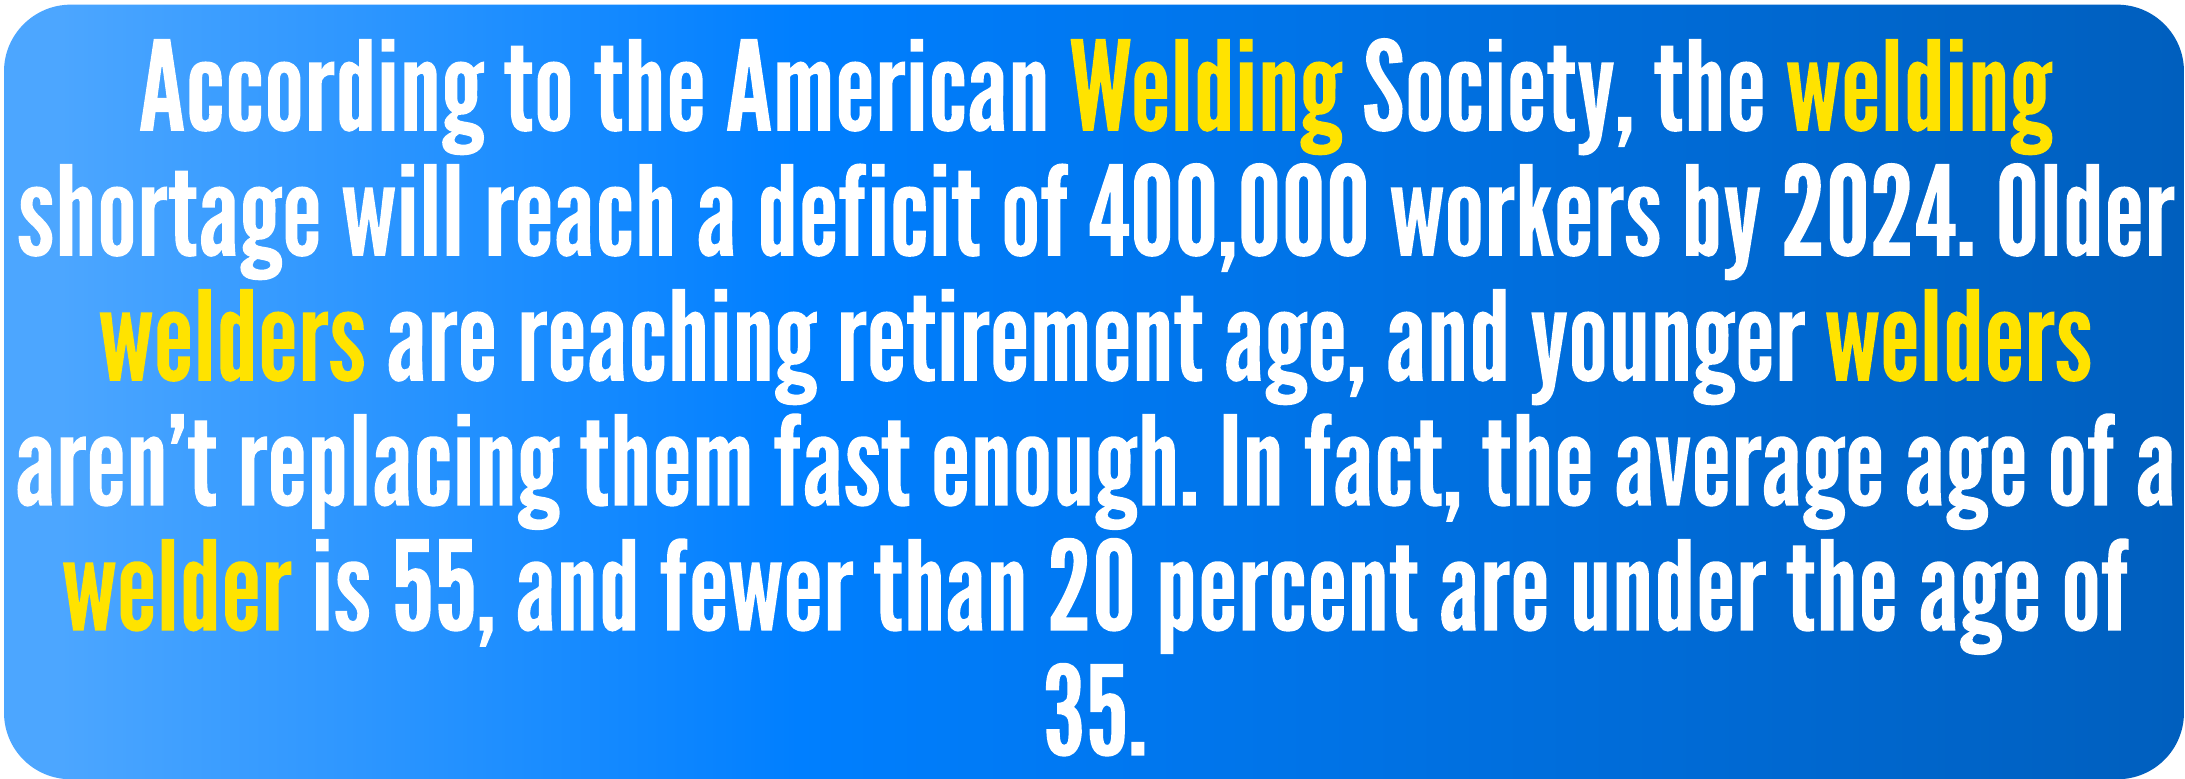 According to theAmerican Welding Society, the welding shortage will reach a deficit of 400,000 workers by 2024. Older welders are reaching retirement age, and younger welders aren't replacing them fast enough. In fact, the average age of a welder is 55, and fewer than 20 percent are under the age of 35.